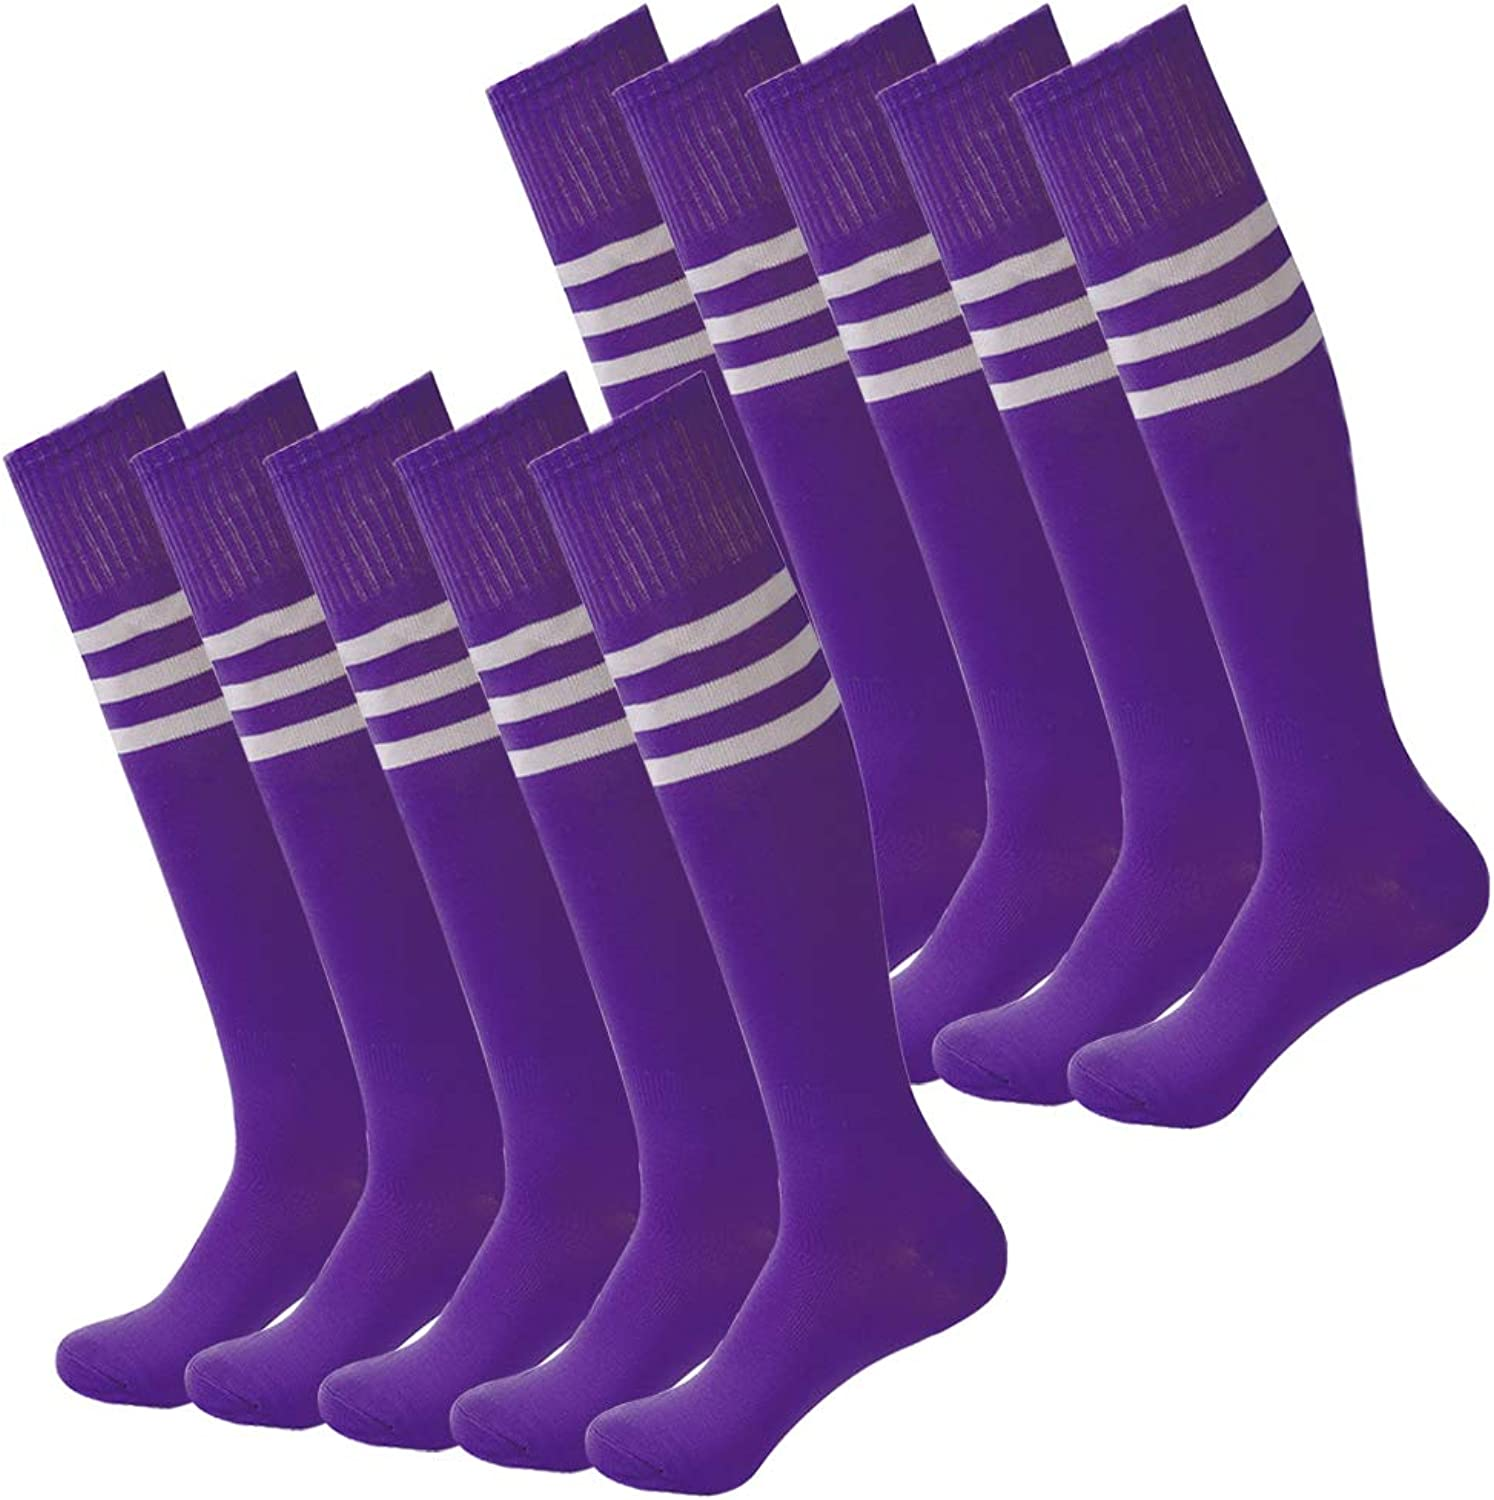 Fasoar Unisex Knee High Stripe Football Sports Tube Socks 2 Pack,6 Pack,10 Pack